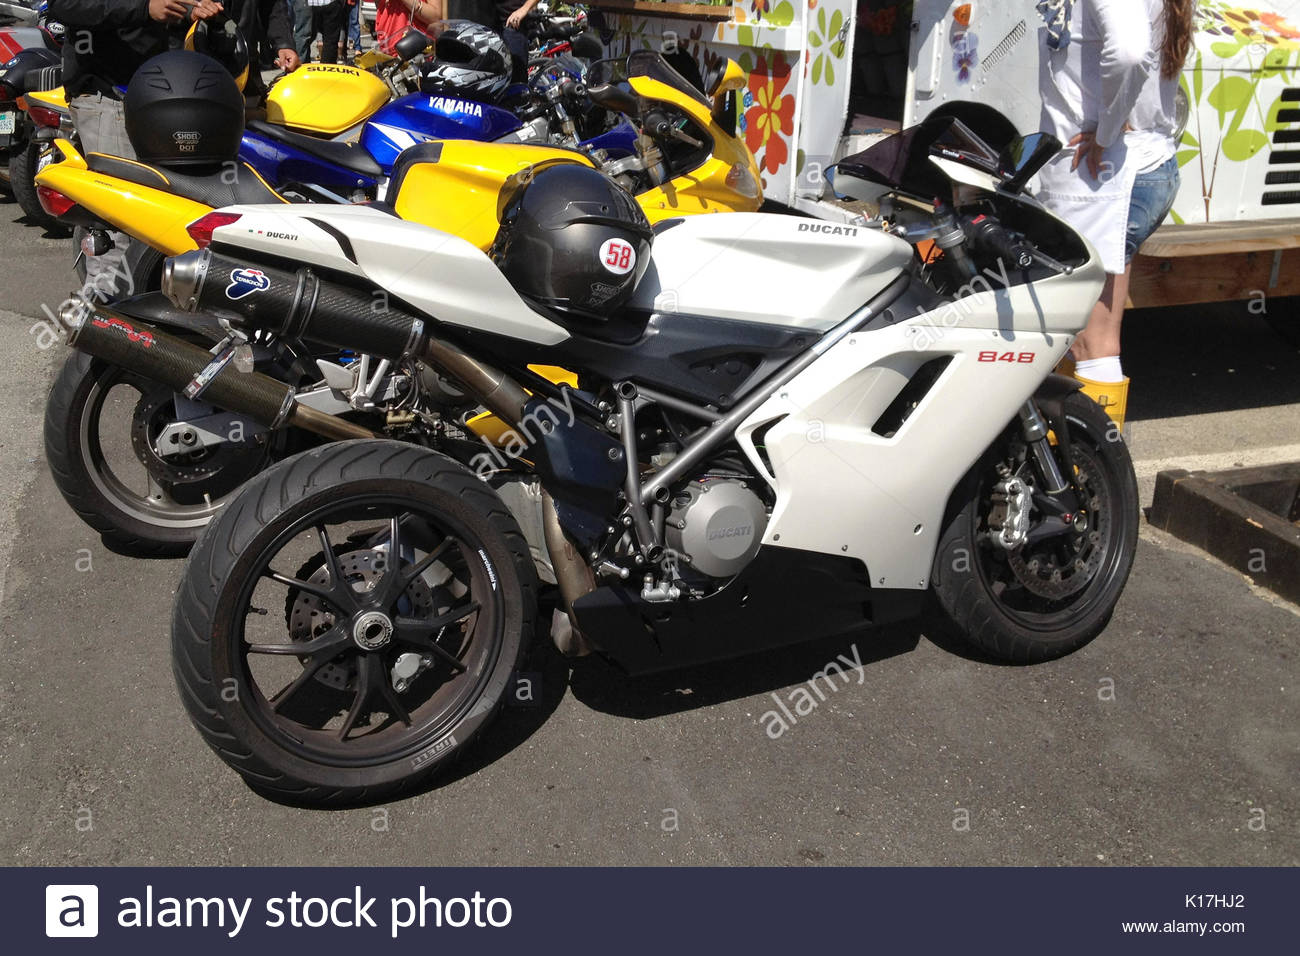 On A Ducati Stockfotos & On A Ducati Bilder - Alamy